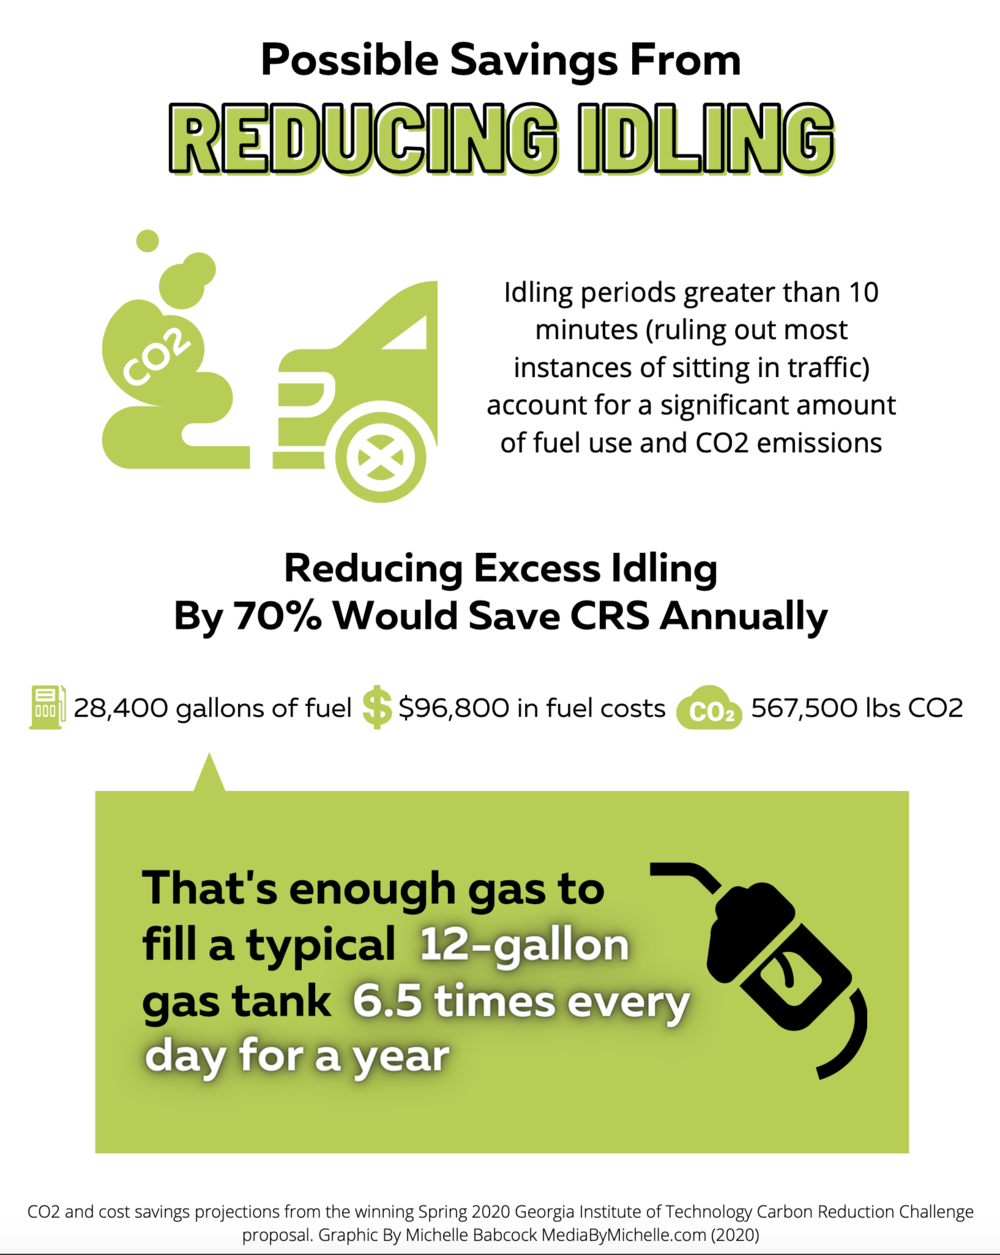 A graphic depicting possible savings from reducing idling in CRS fleet vehicles.